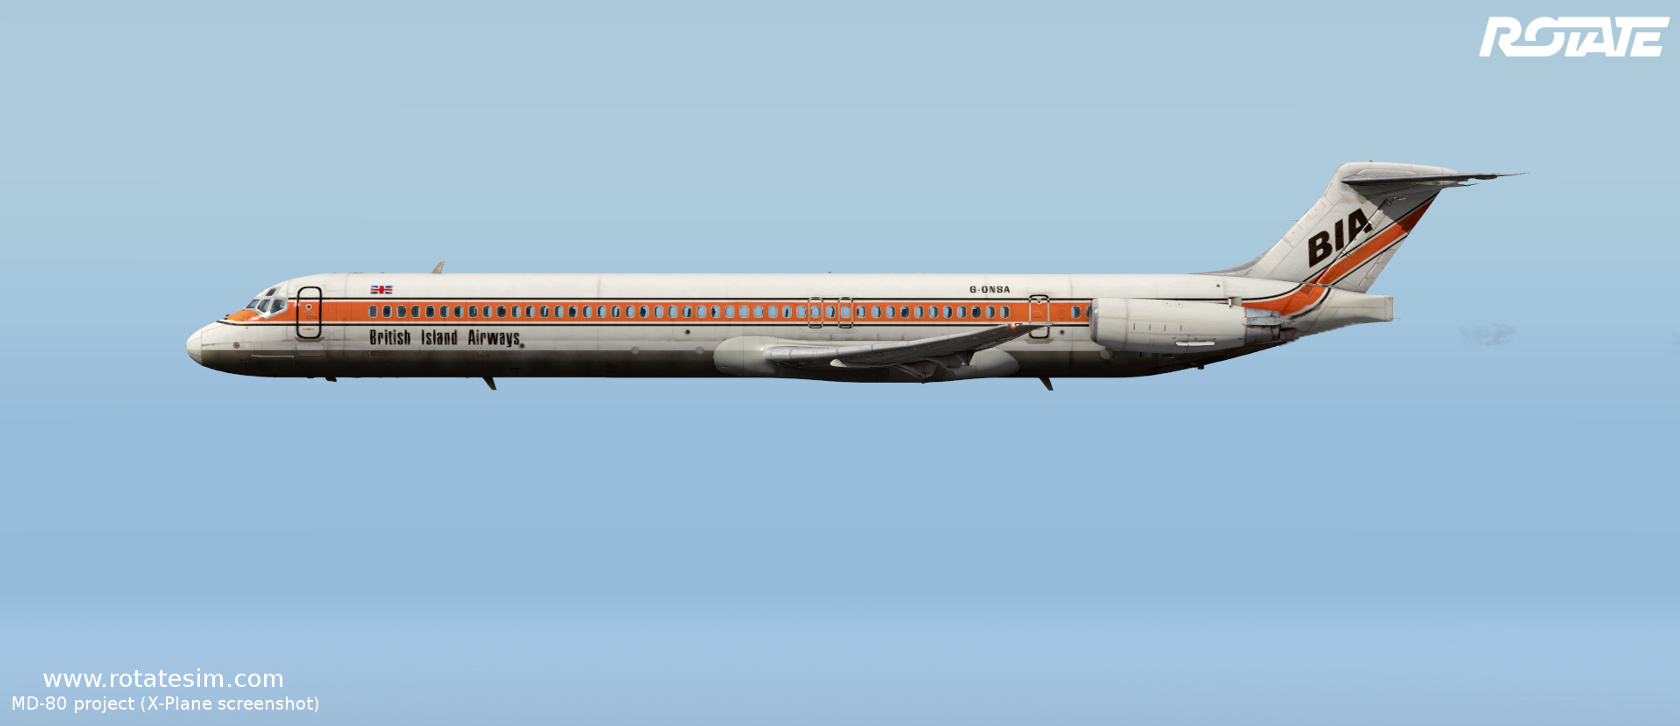 MD-80 Screenshot 41